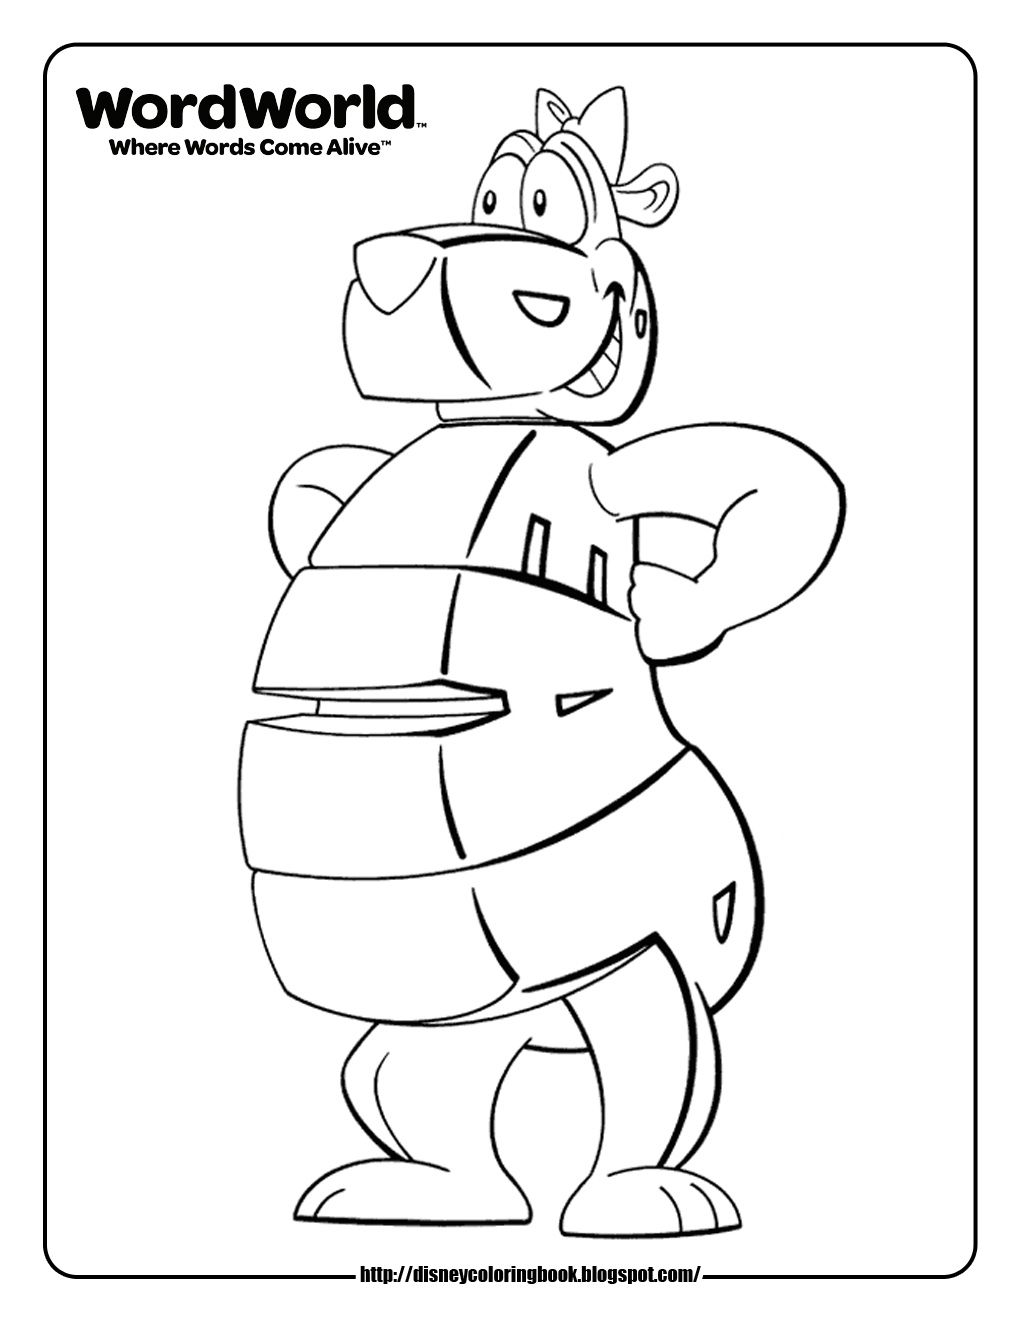 Printable coloring pages with words - Word World Word World Bear Coloring Pages Copy And Paste This Site Not